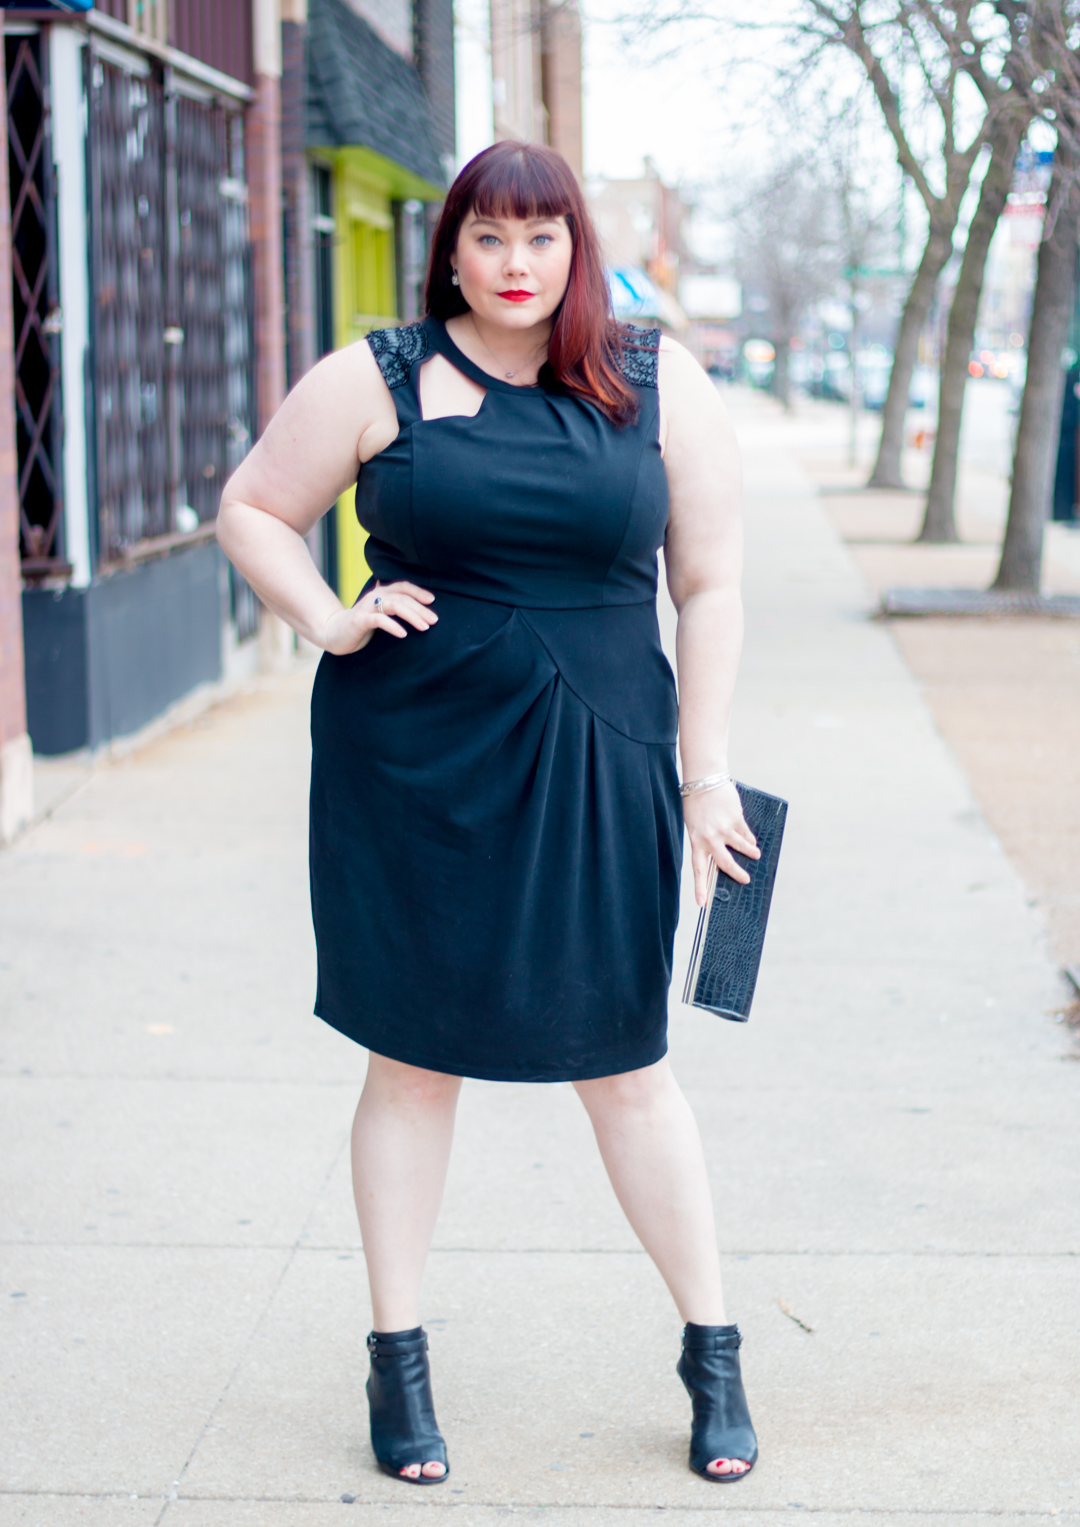 Plus Size Blogger Amber from Style Plus Curves in City Chic LBD from Gwynnie Bee